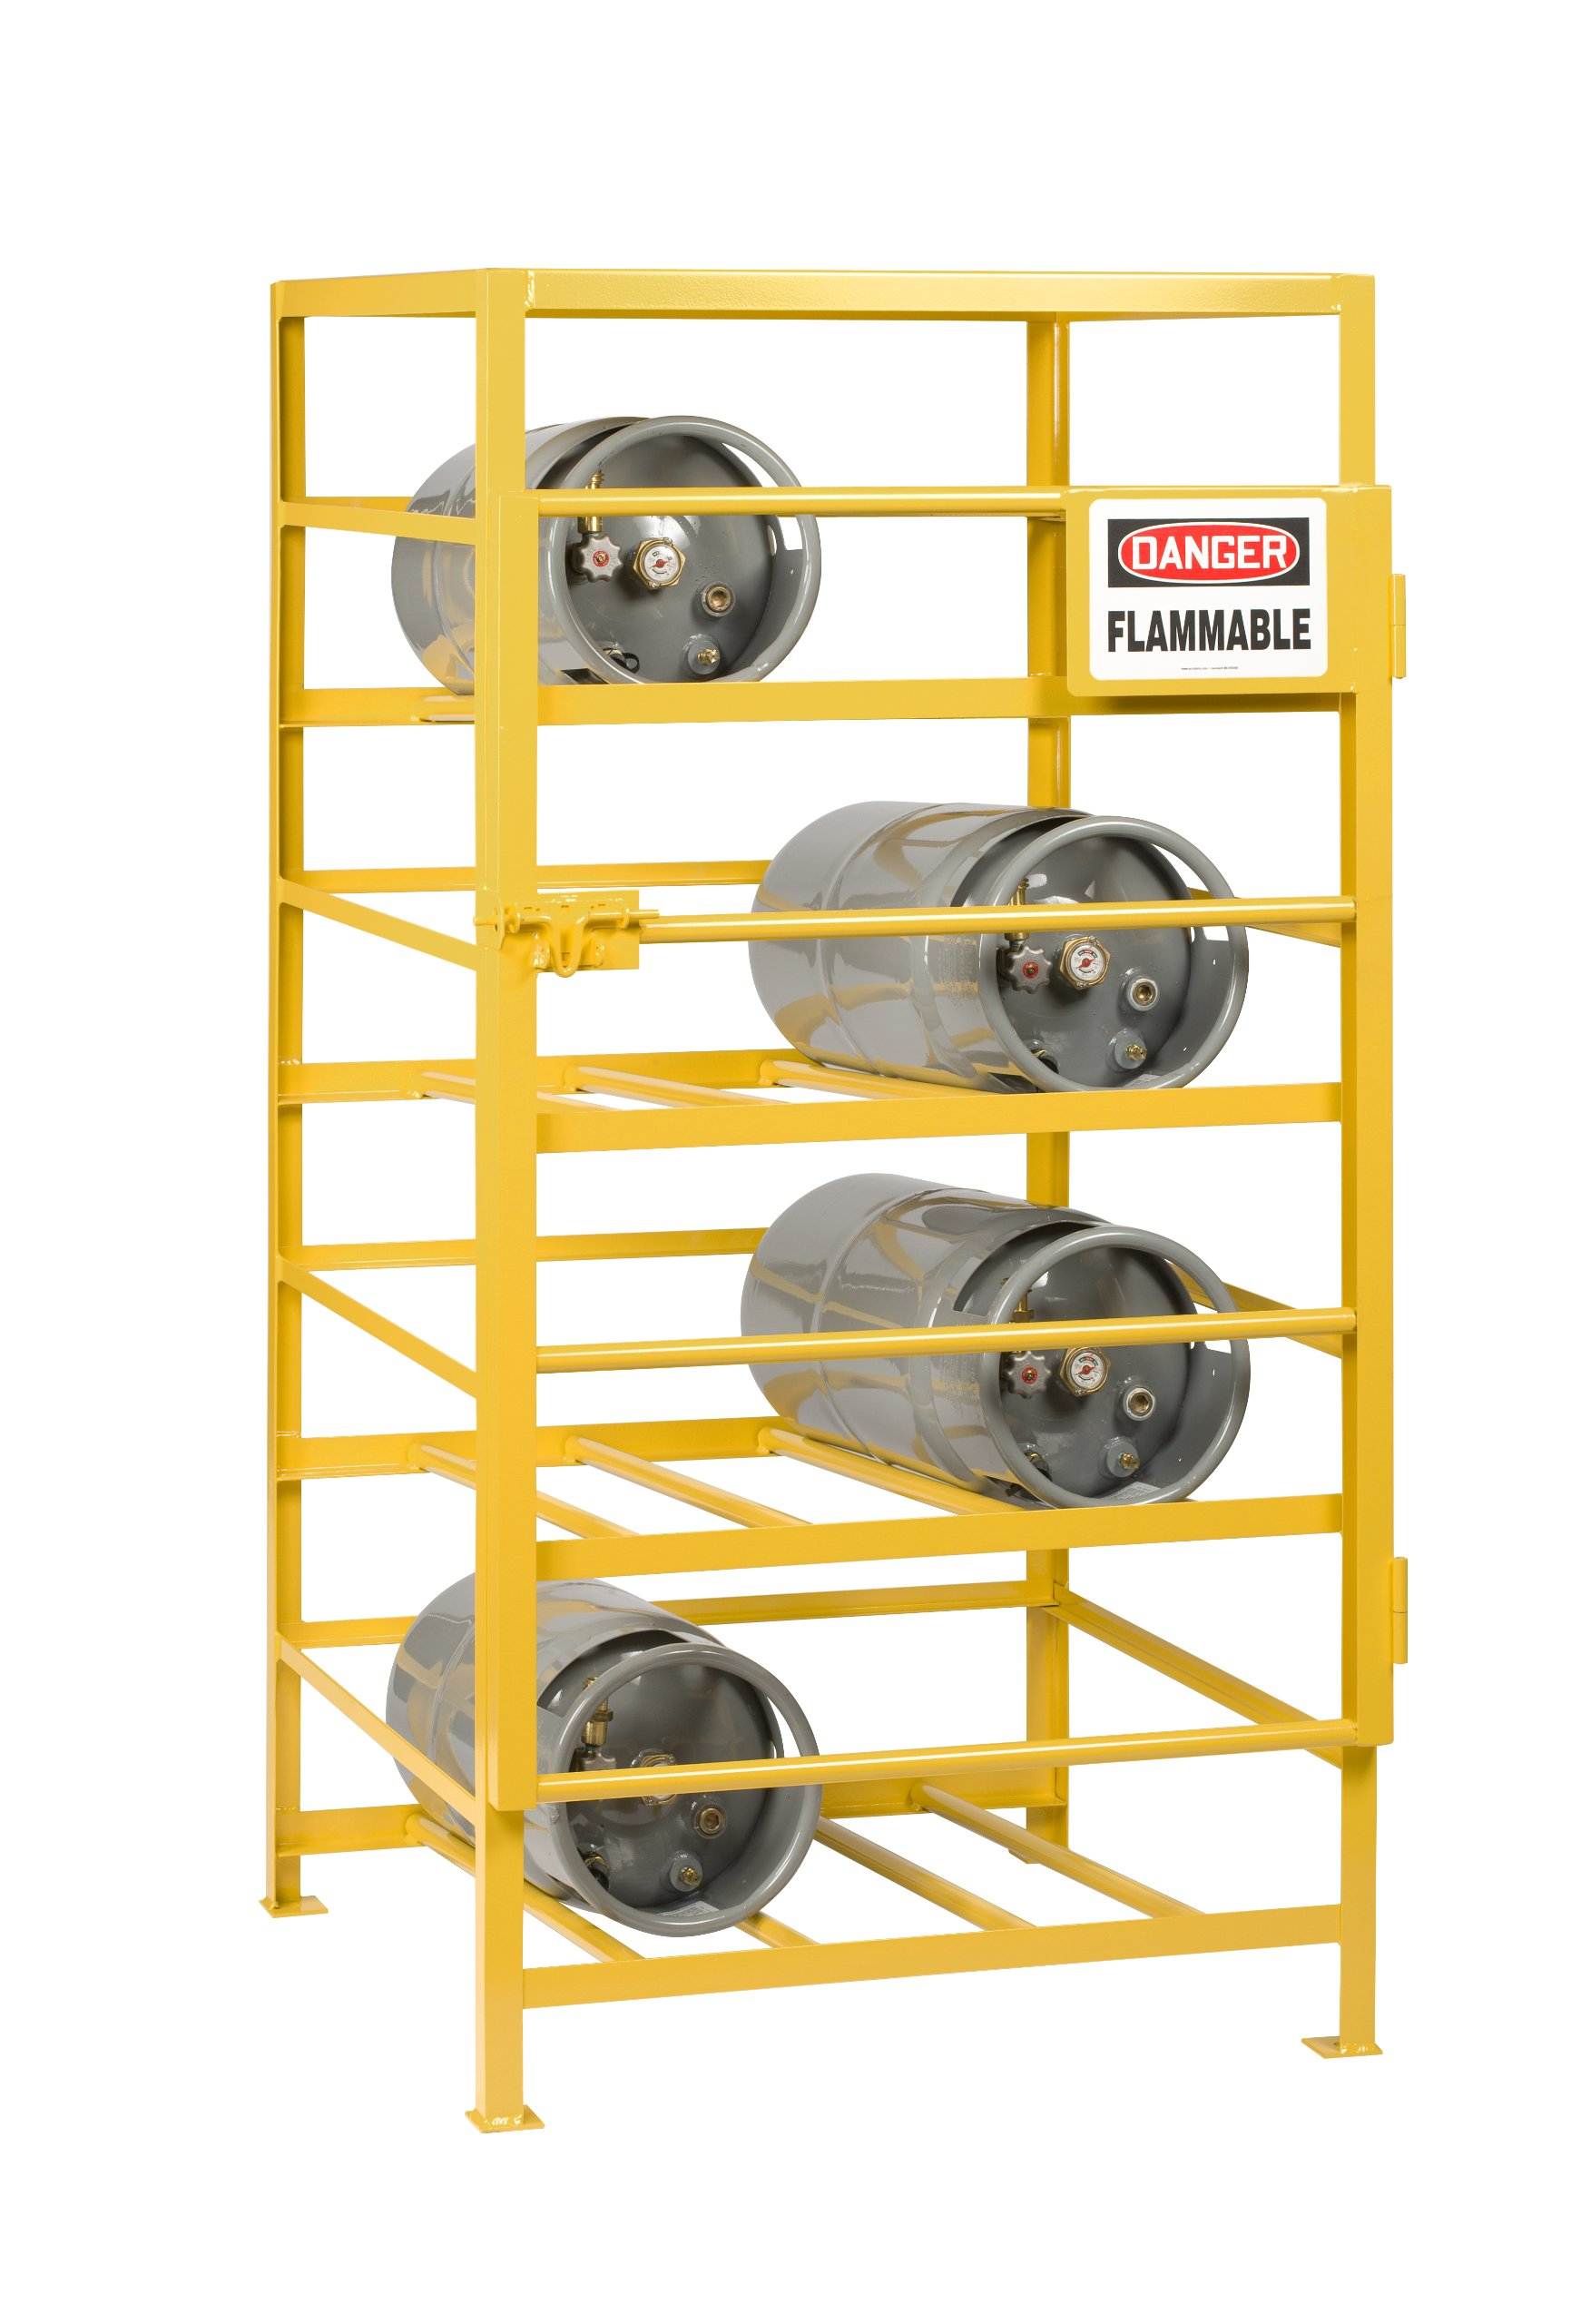 Little Giant GSC-3648-70 Industrial Gas Cylinder Cage, 12 Cylinders Capacity, 70'' Height x 48'' Width x 36'' Depth, Yellow